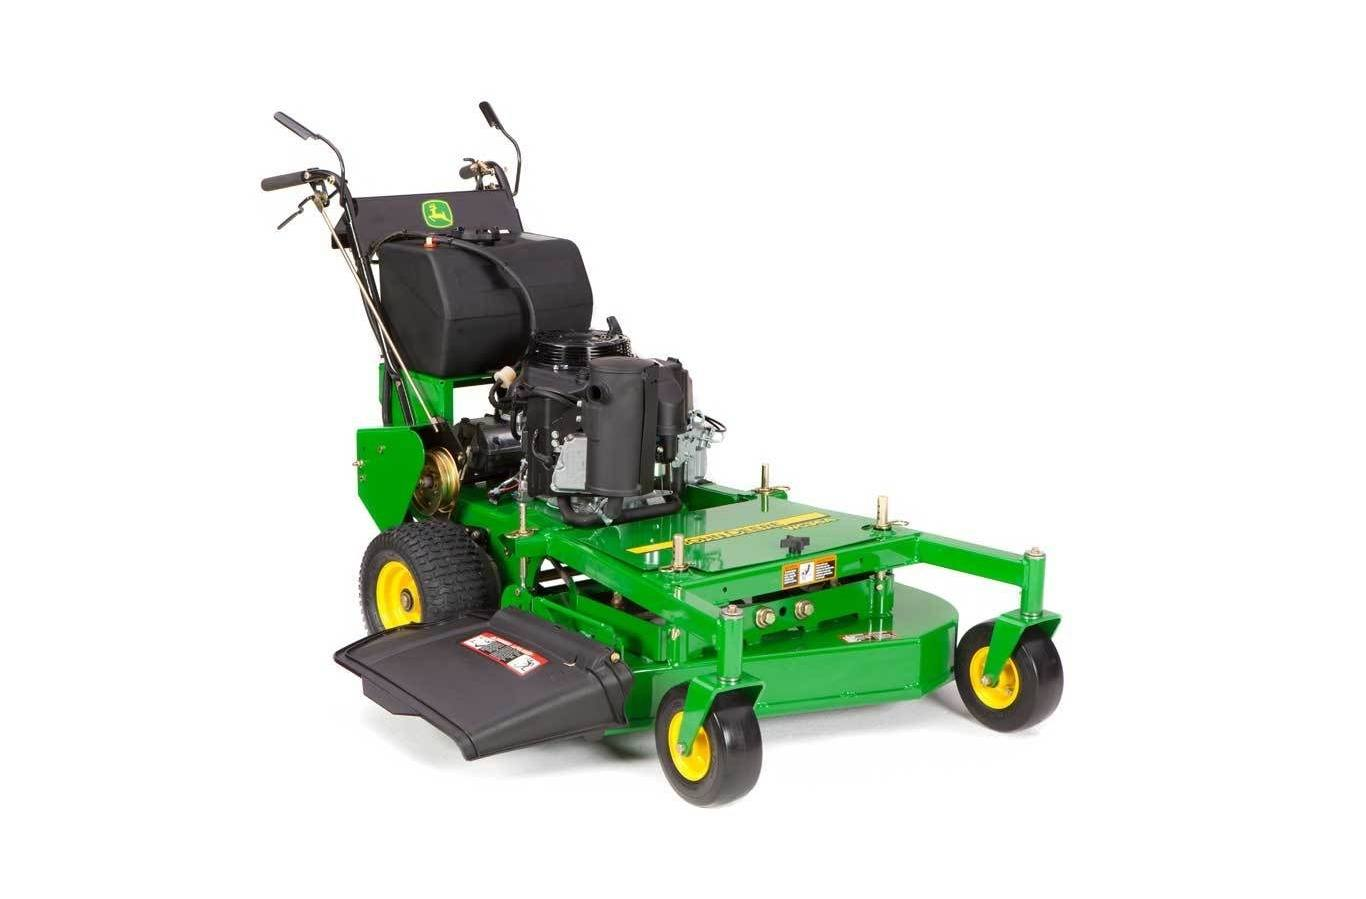 2019 John Deere WG36A for sale in Middletown, CT  Midstate